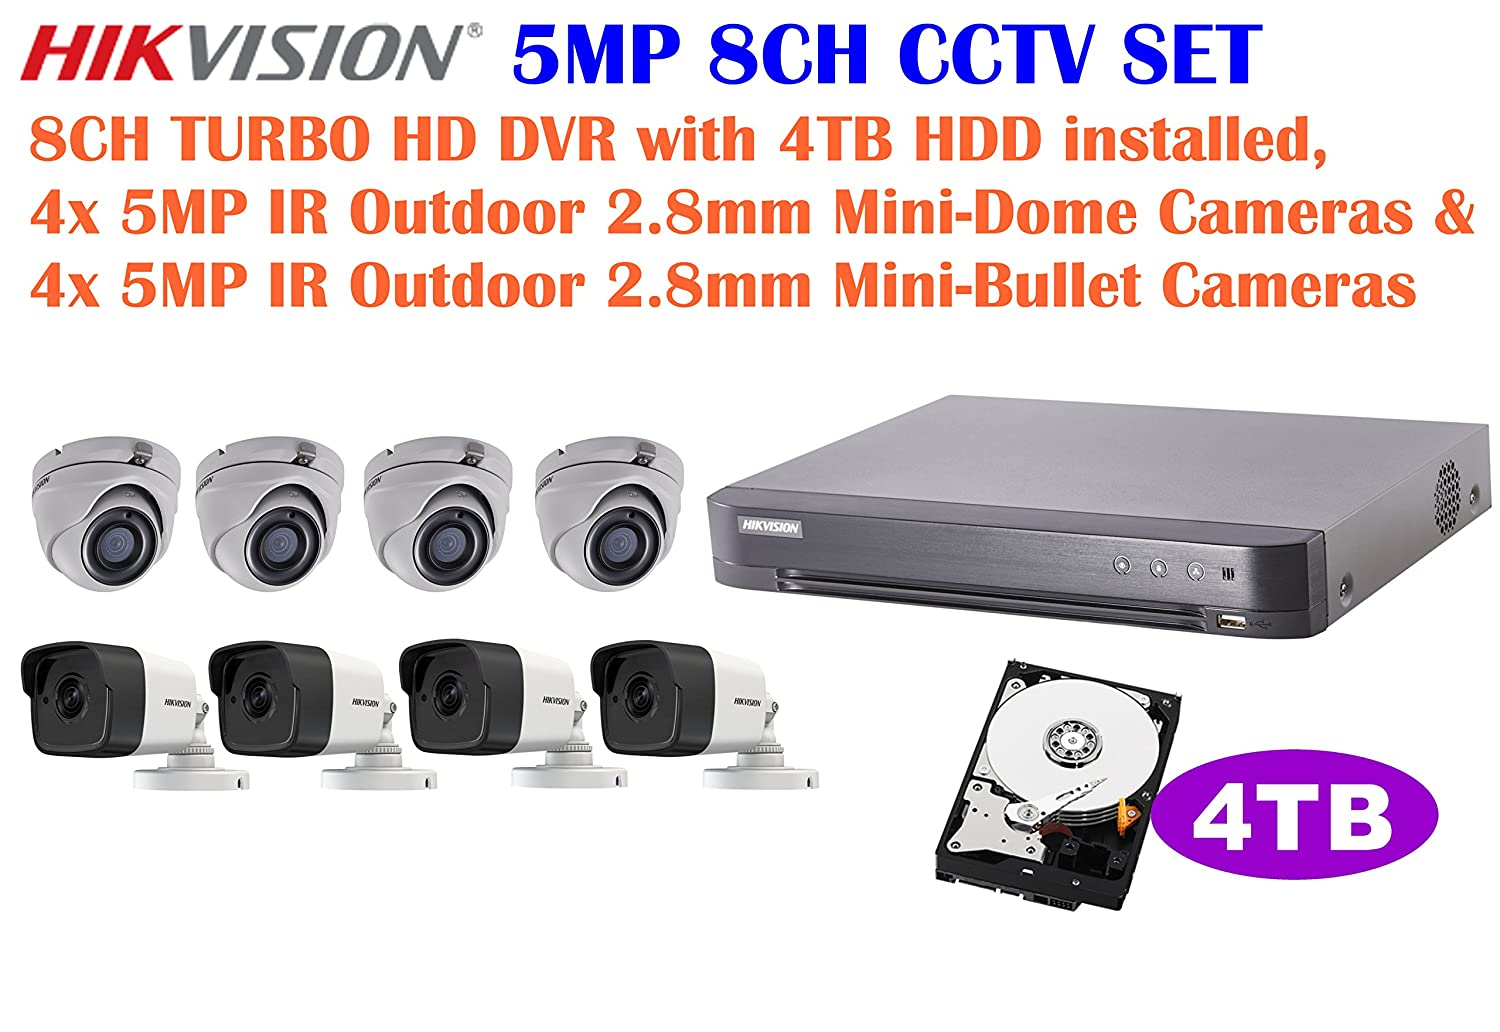 Amazon.com : Hikvision 5MP 8CH Turbo HD CCTV System: 8CH DVR with 4TB HDD Installed, 5MP IR 2.8mm Lens Outdoor Mini-Bullet Camera x4, and 5MP IR 2.8mm Lens ...